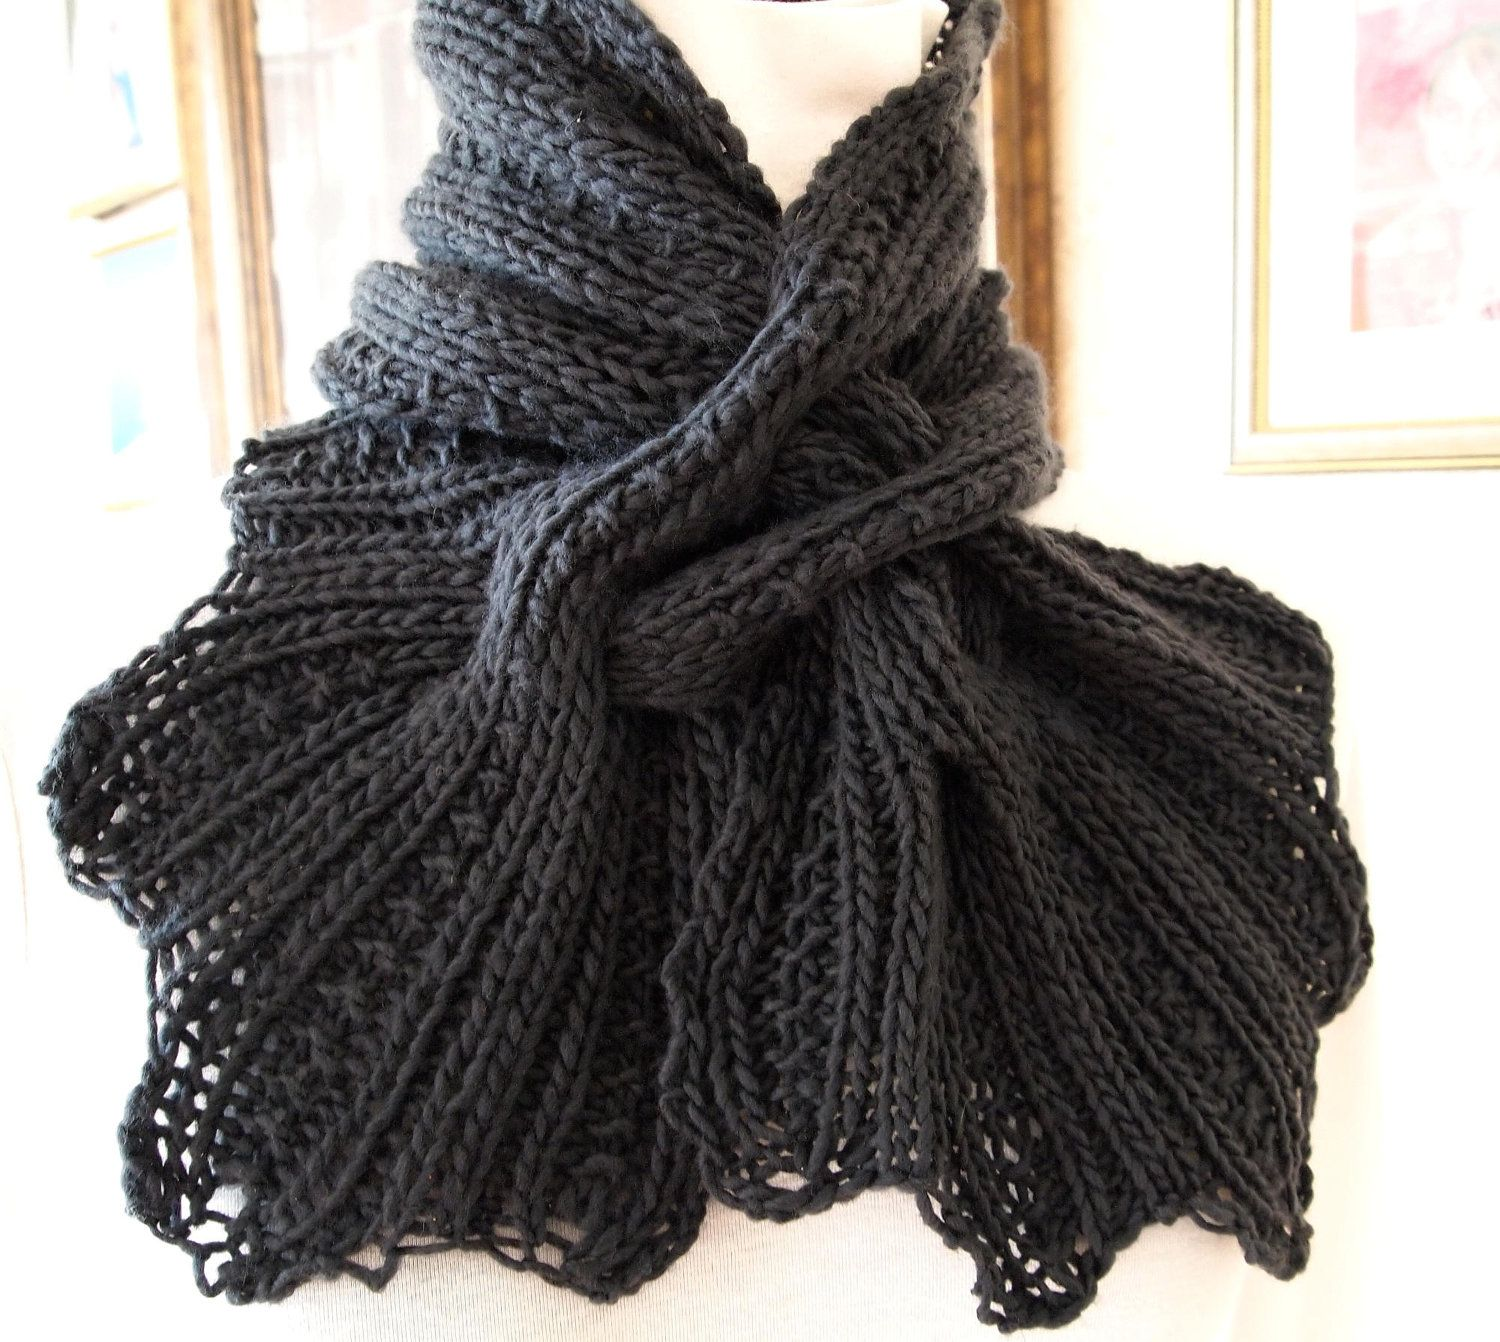 knitted patterns | Heartwarming Knit Scarf Knitting ...